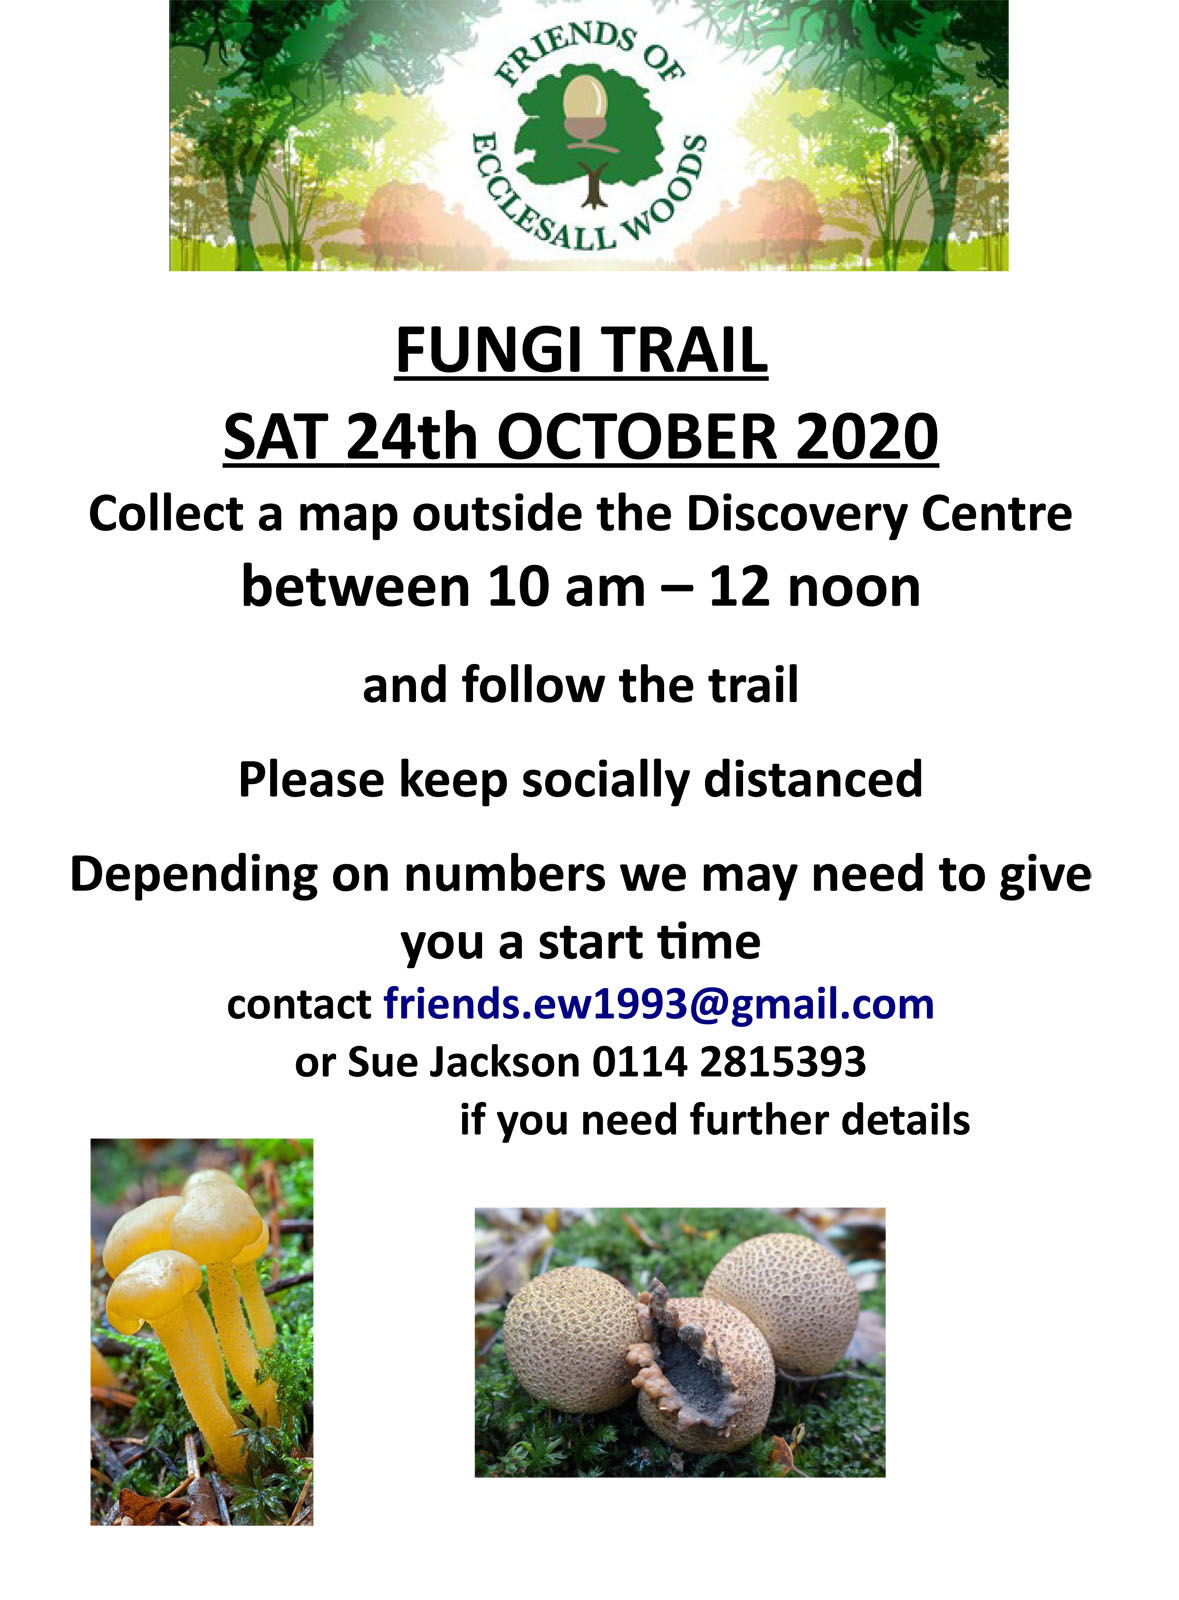 Friends of Ecclesall Woods fungi trail – Saturday 24th October 2020